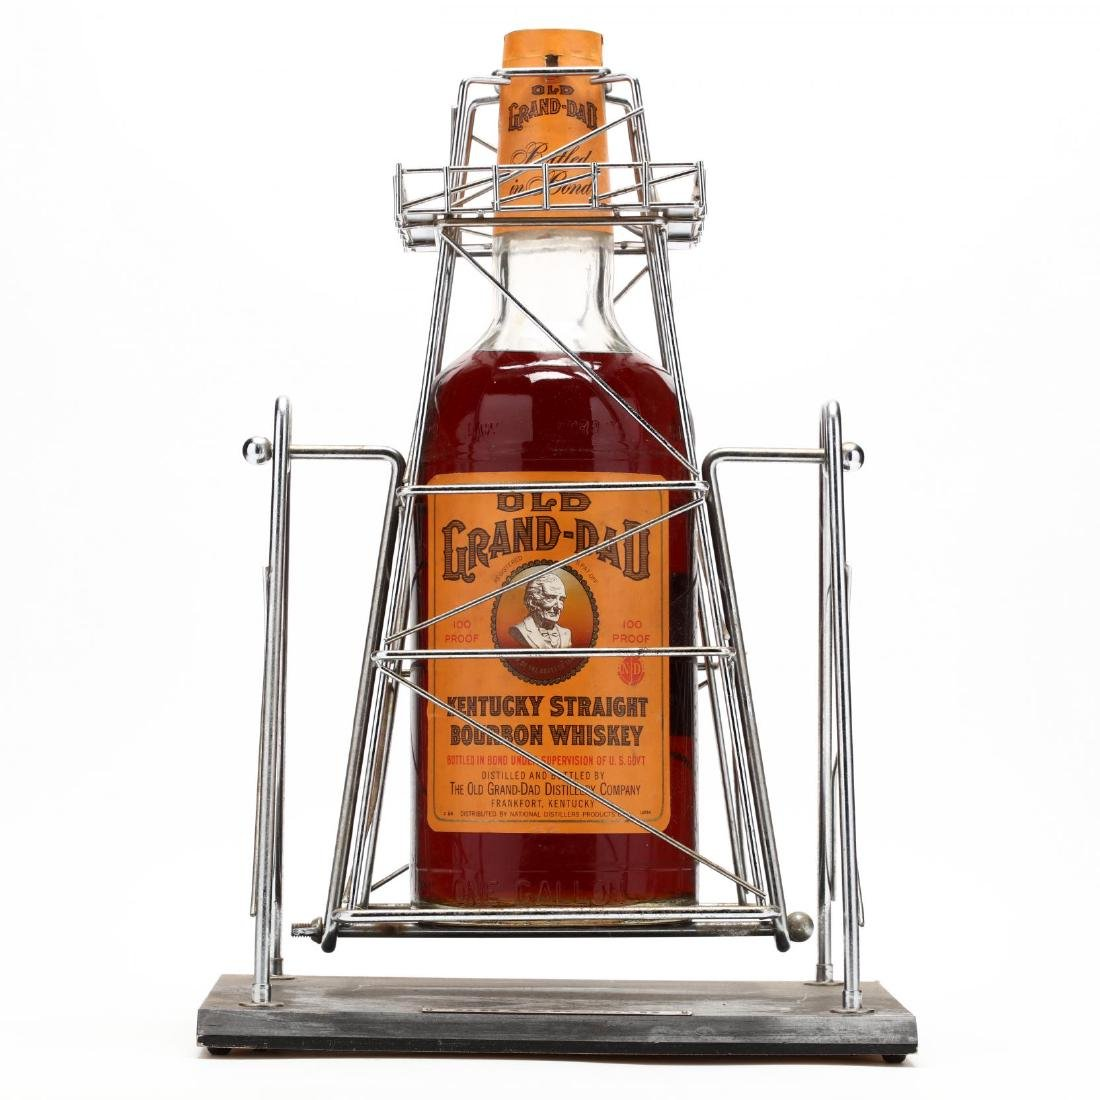 Old Grand-Dad Bourbon Whiskey